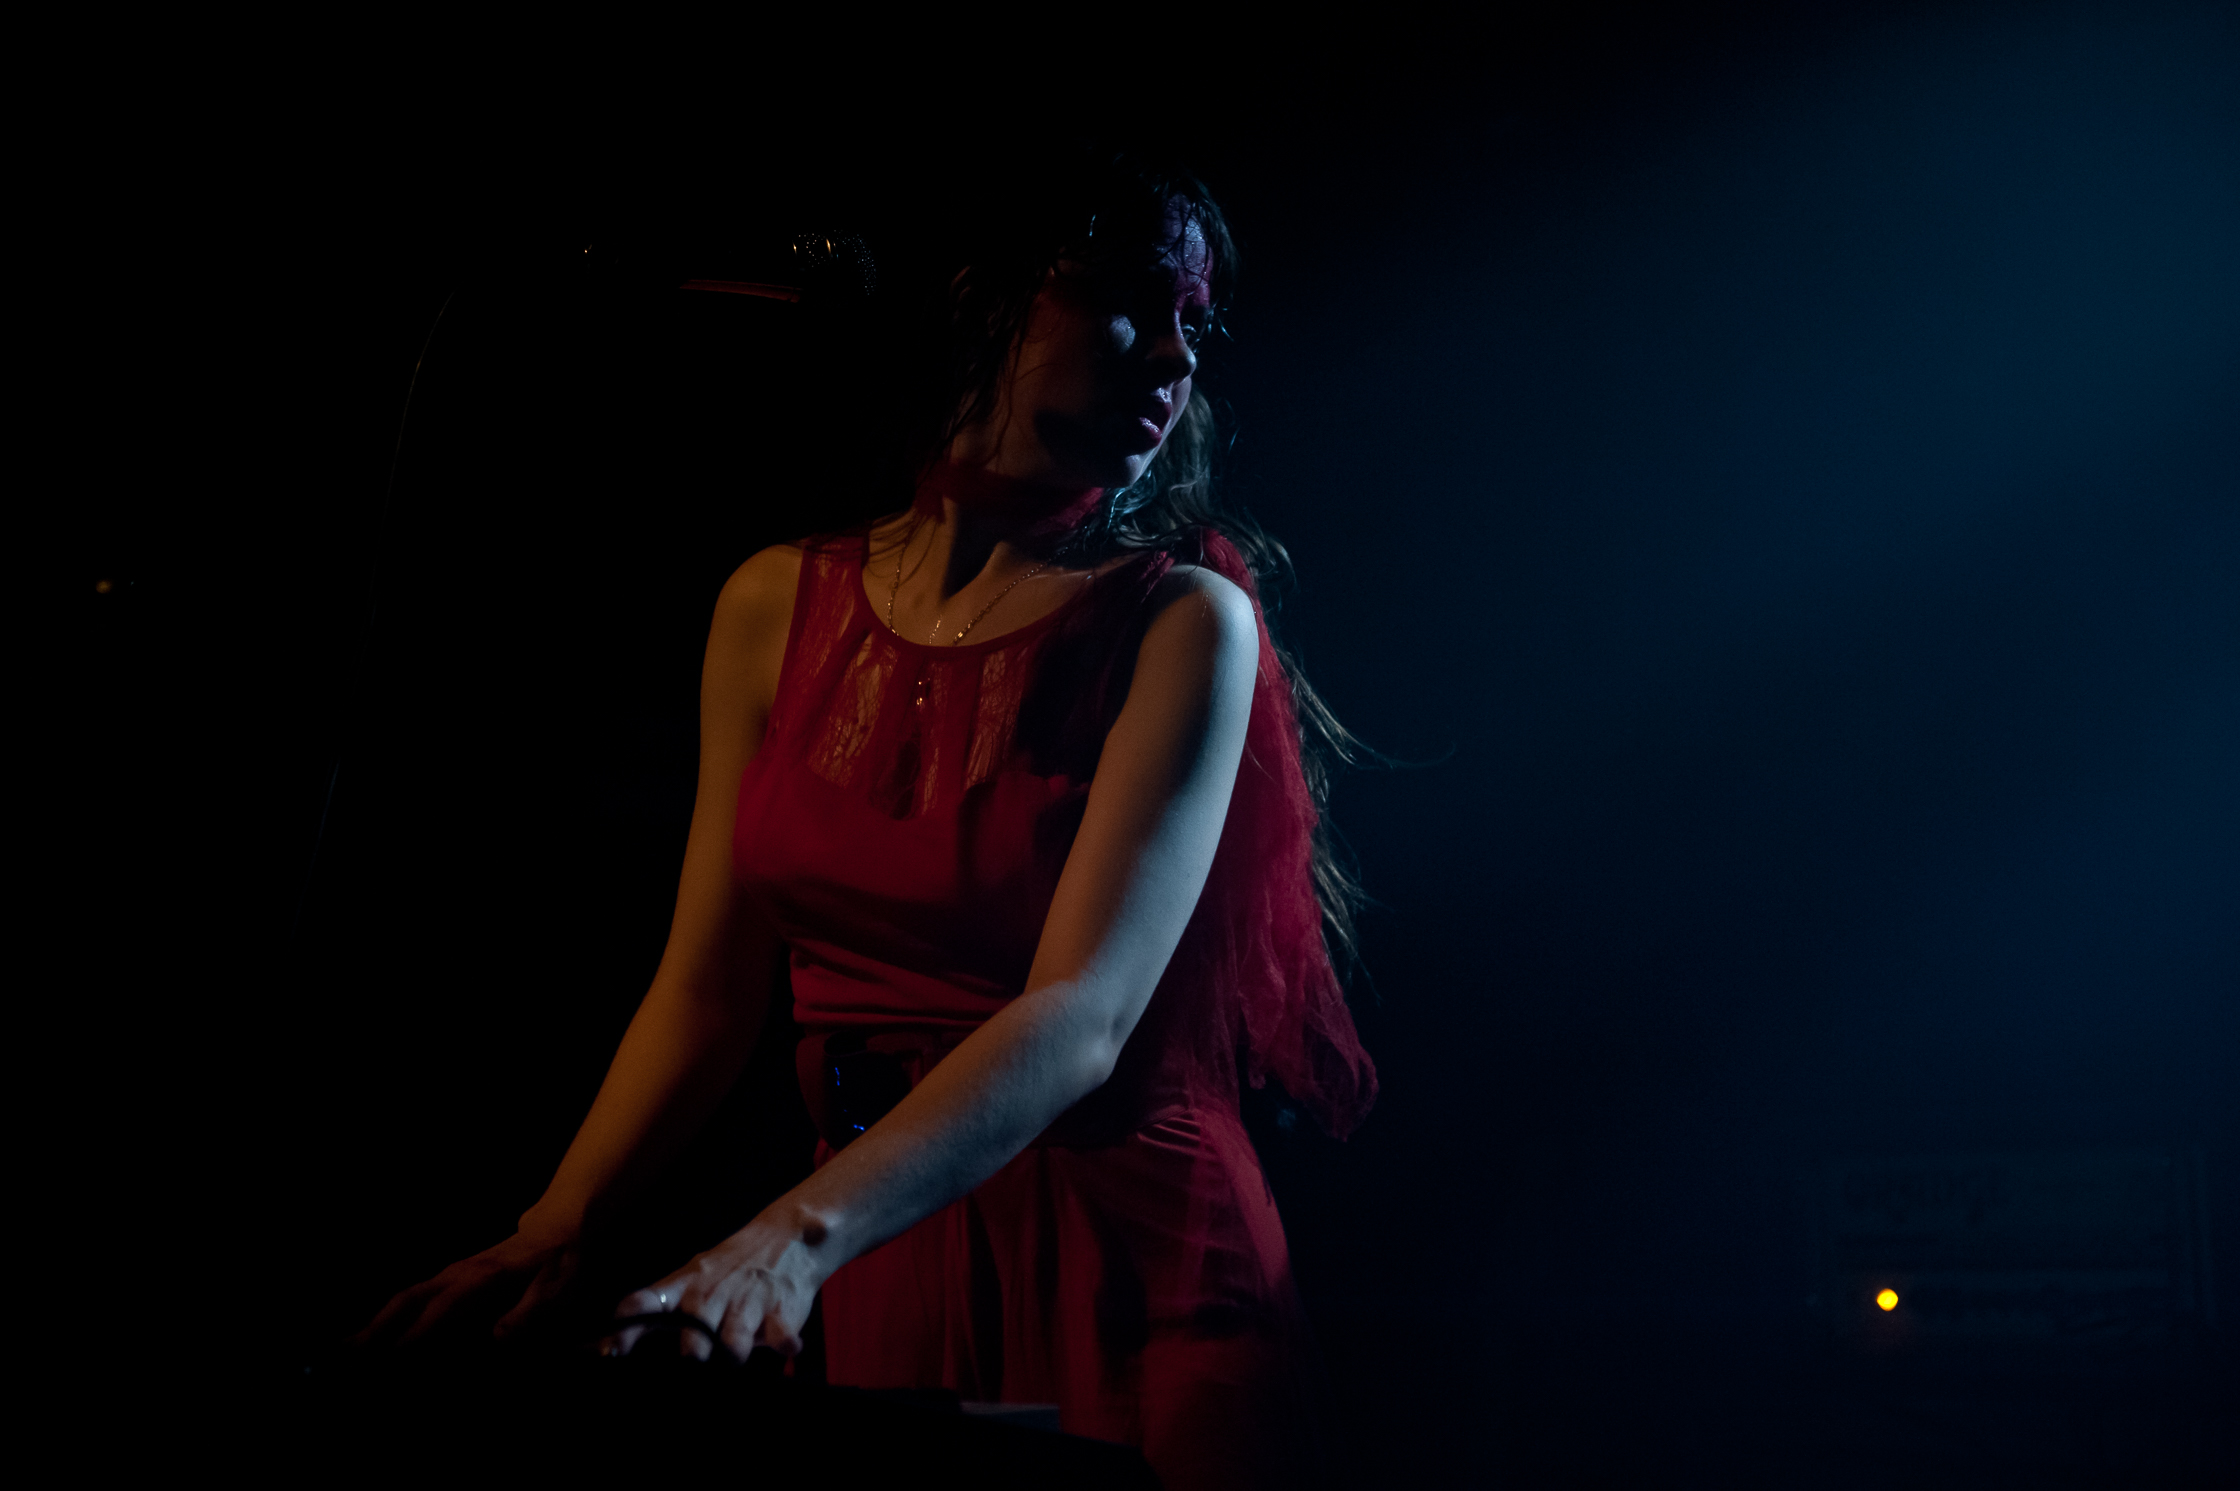 2016_09_23_arteather_lebutcherettes-1299